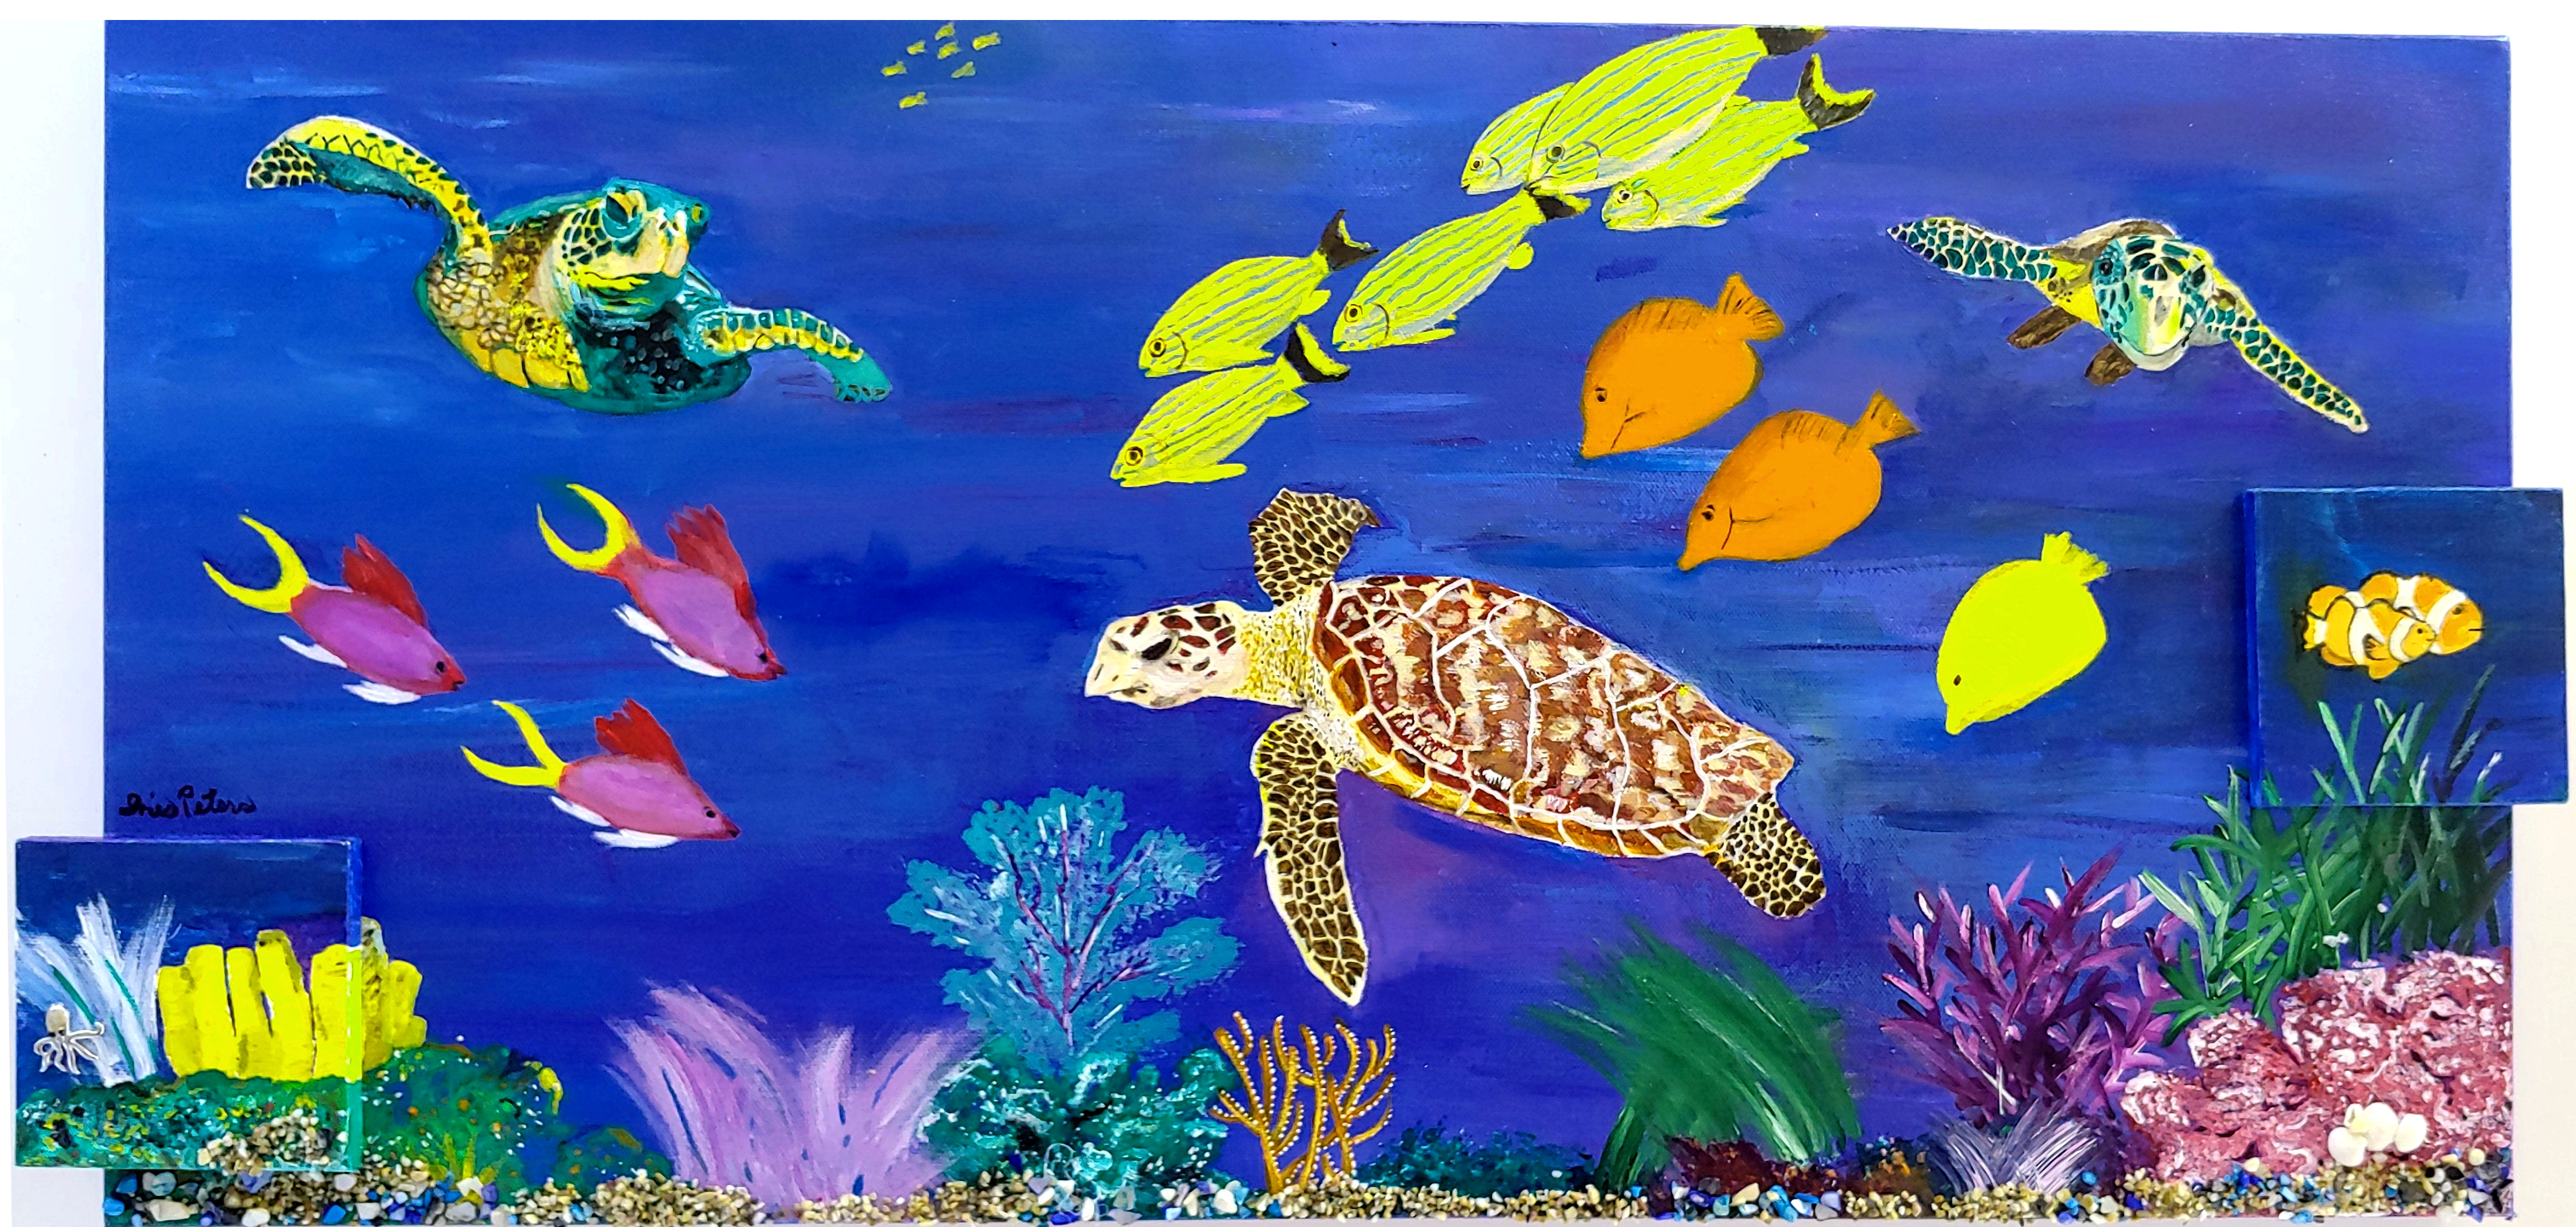 3 sea turtles and friends  30 x 15   $250